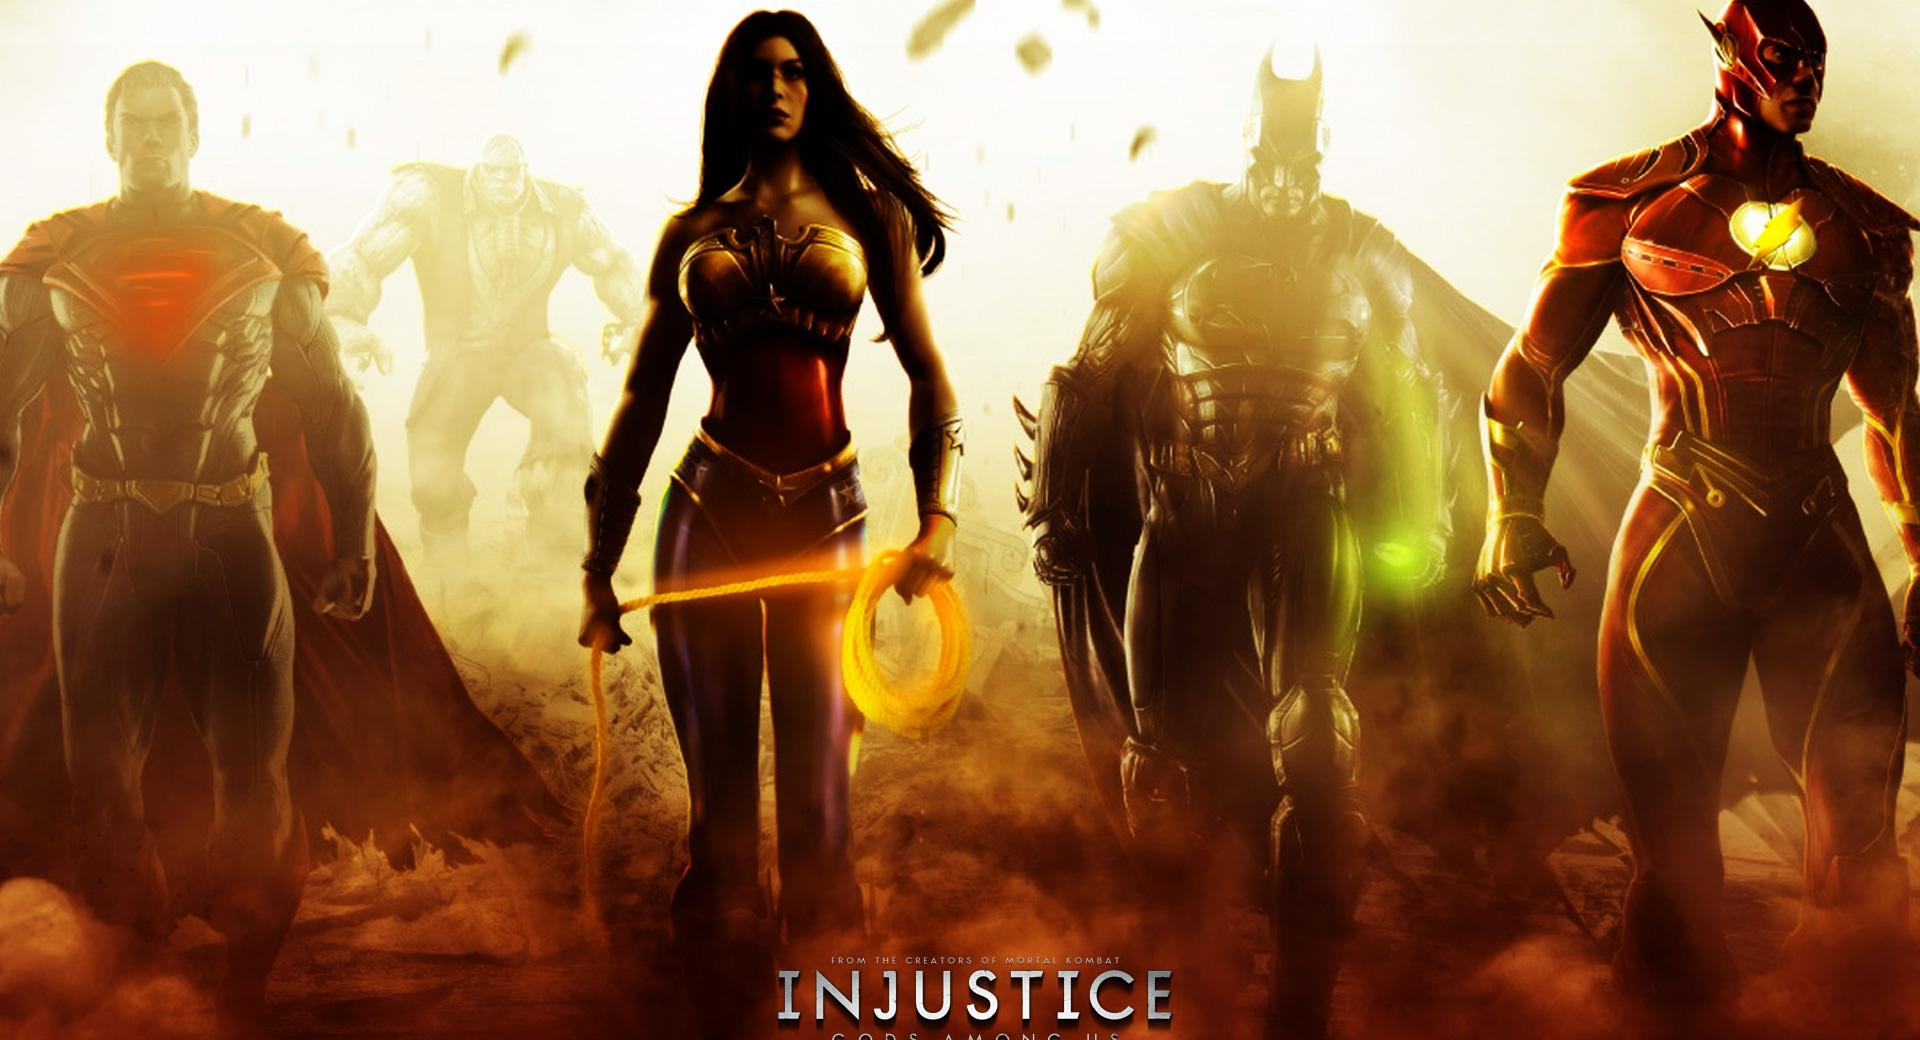 Injustice Gods Among Us (2013) wallpapers HD quality